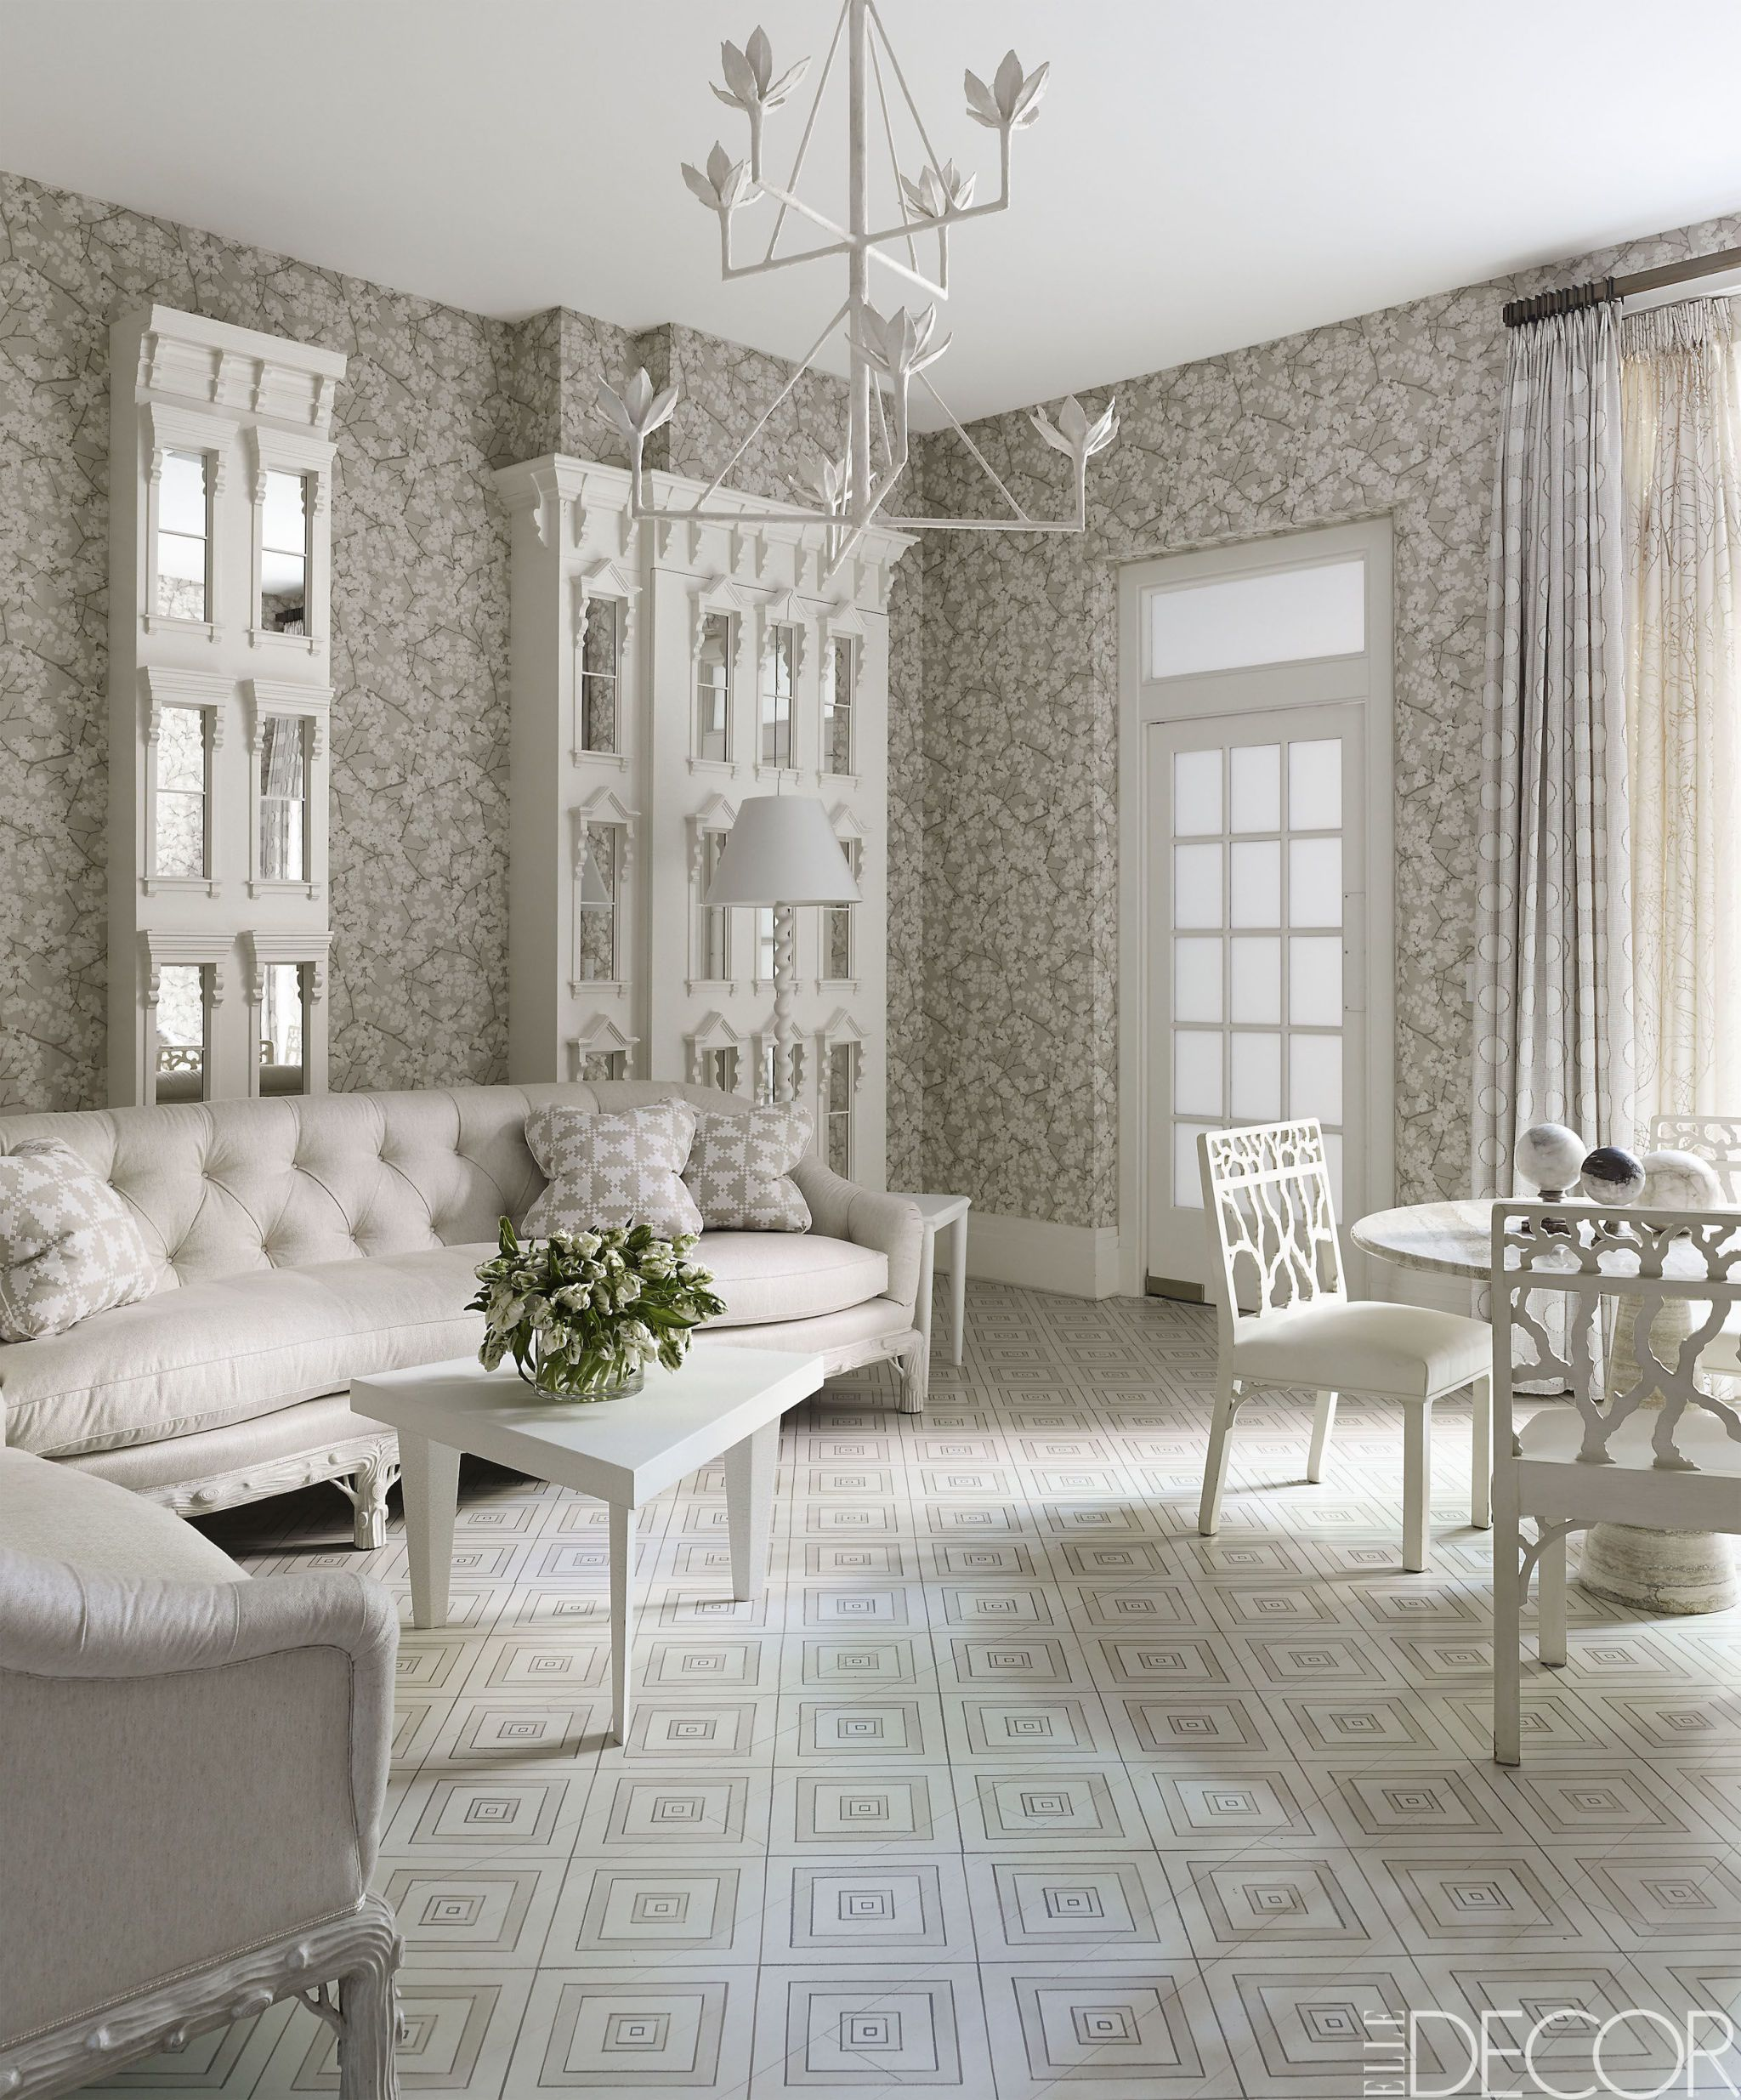 20 White Living Room Furniture Ideas White Chairs And Couches Rh Elledecor  Com White Living Room